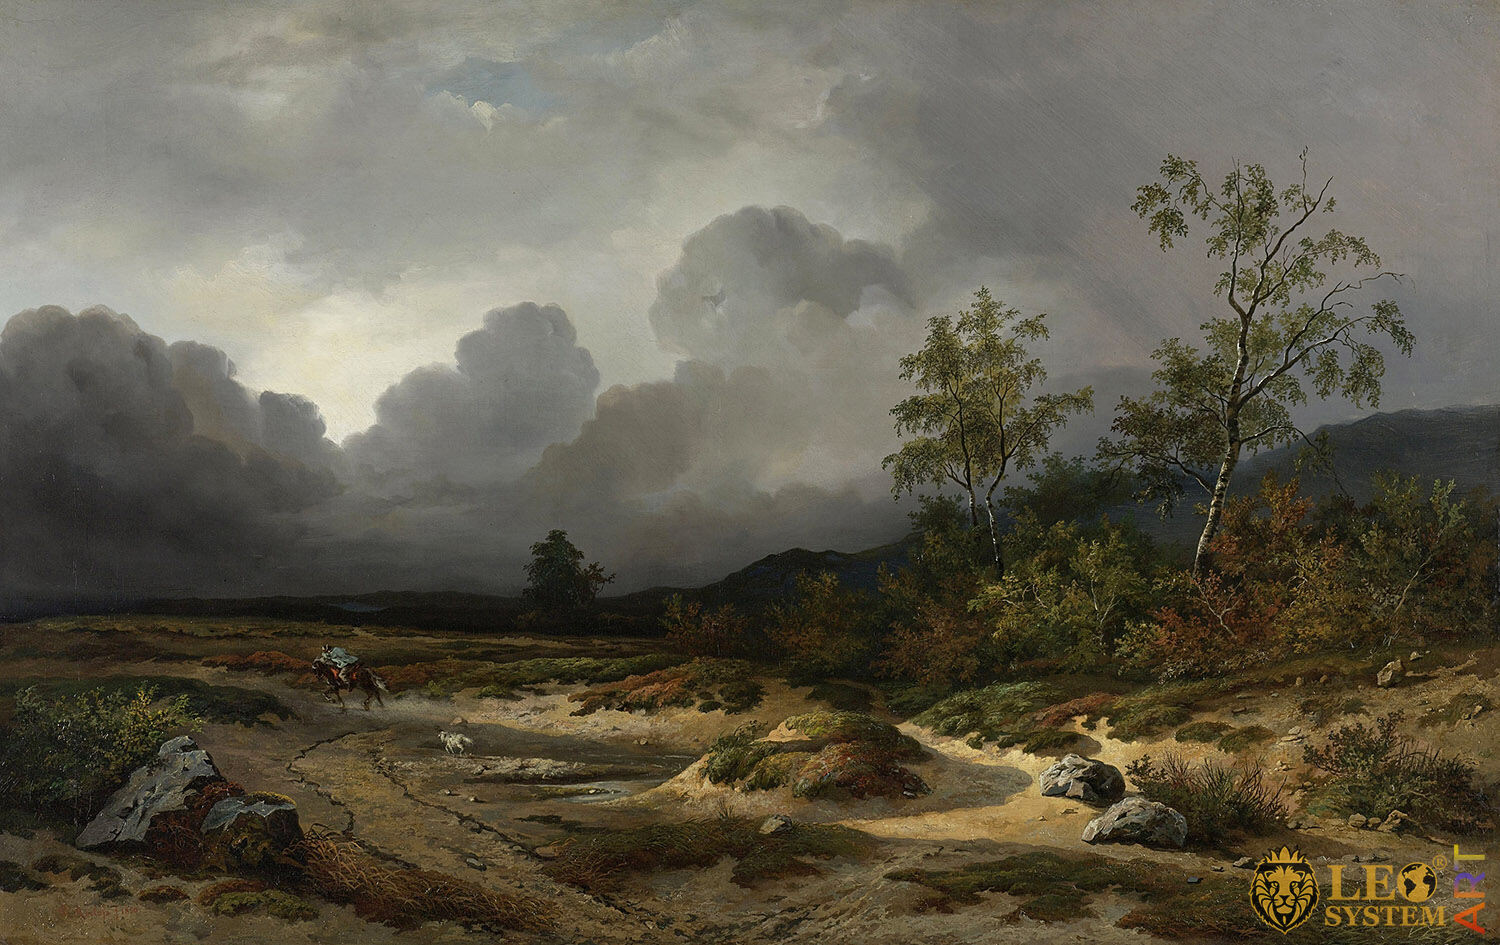 Landscape with a Thunderstorm Brewing, Painter: Willem Roelofs 1st, 1850, Dutch Painting, Original Painting